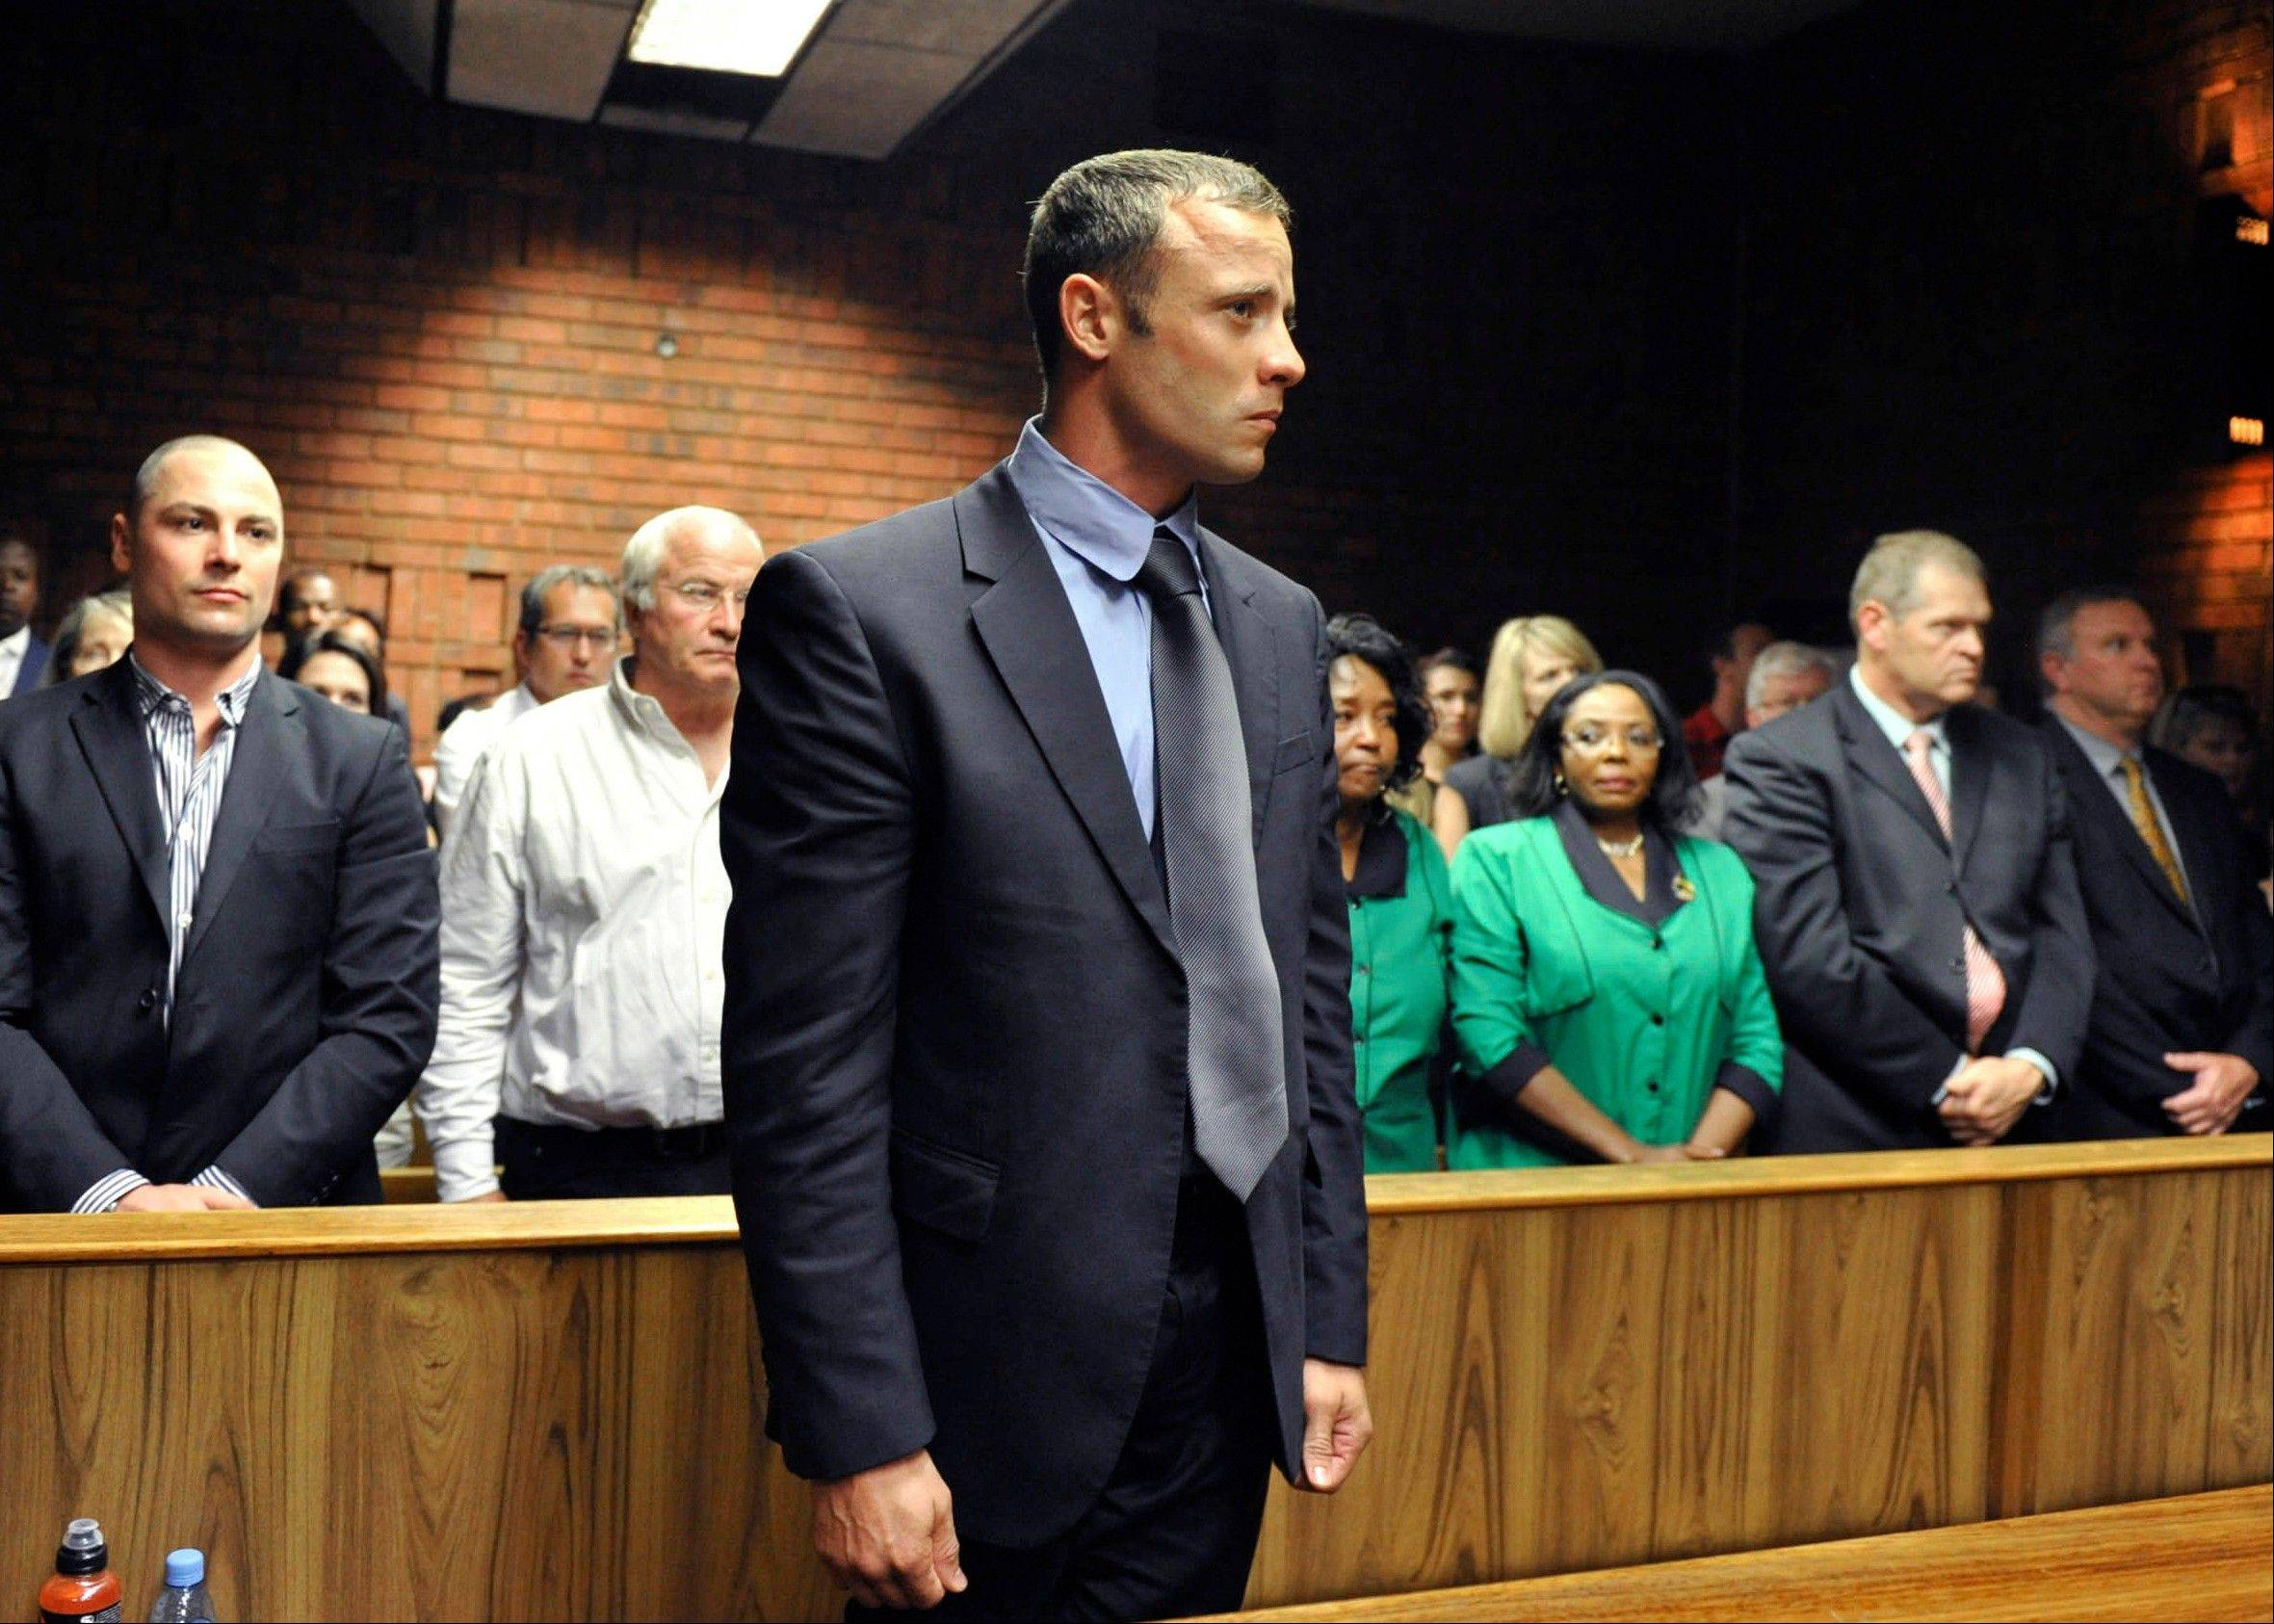 Olympian Oscar Pistorius stands following his bail hearing in Pretoria, South Africa, Tuesday. Pistorius fired into the door of a small bathroom where his girlfriend was cowering after a shouting match on Valentine�s Day, hitting her three times, a South African prosecutor said Tuesday as he charged the sports icon with premeditated murder.